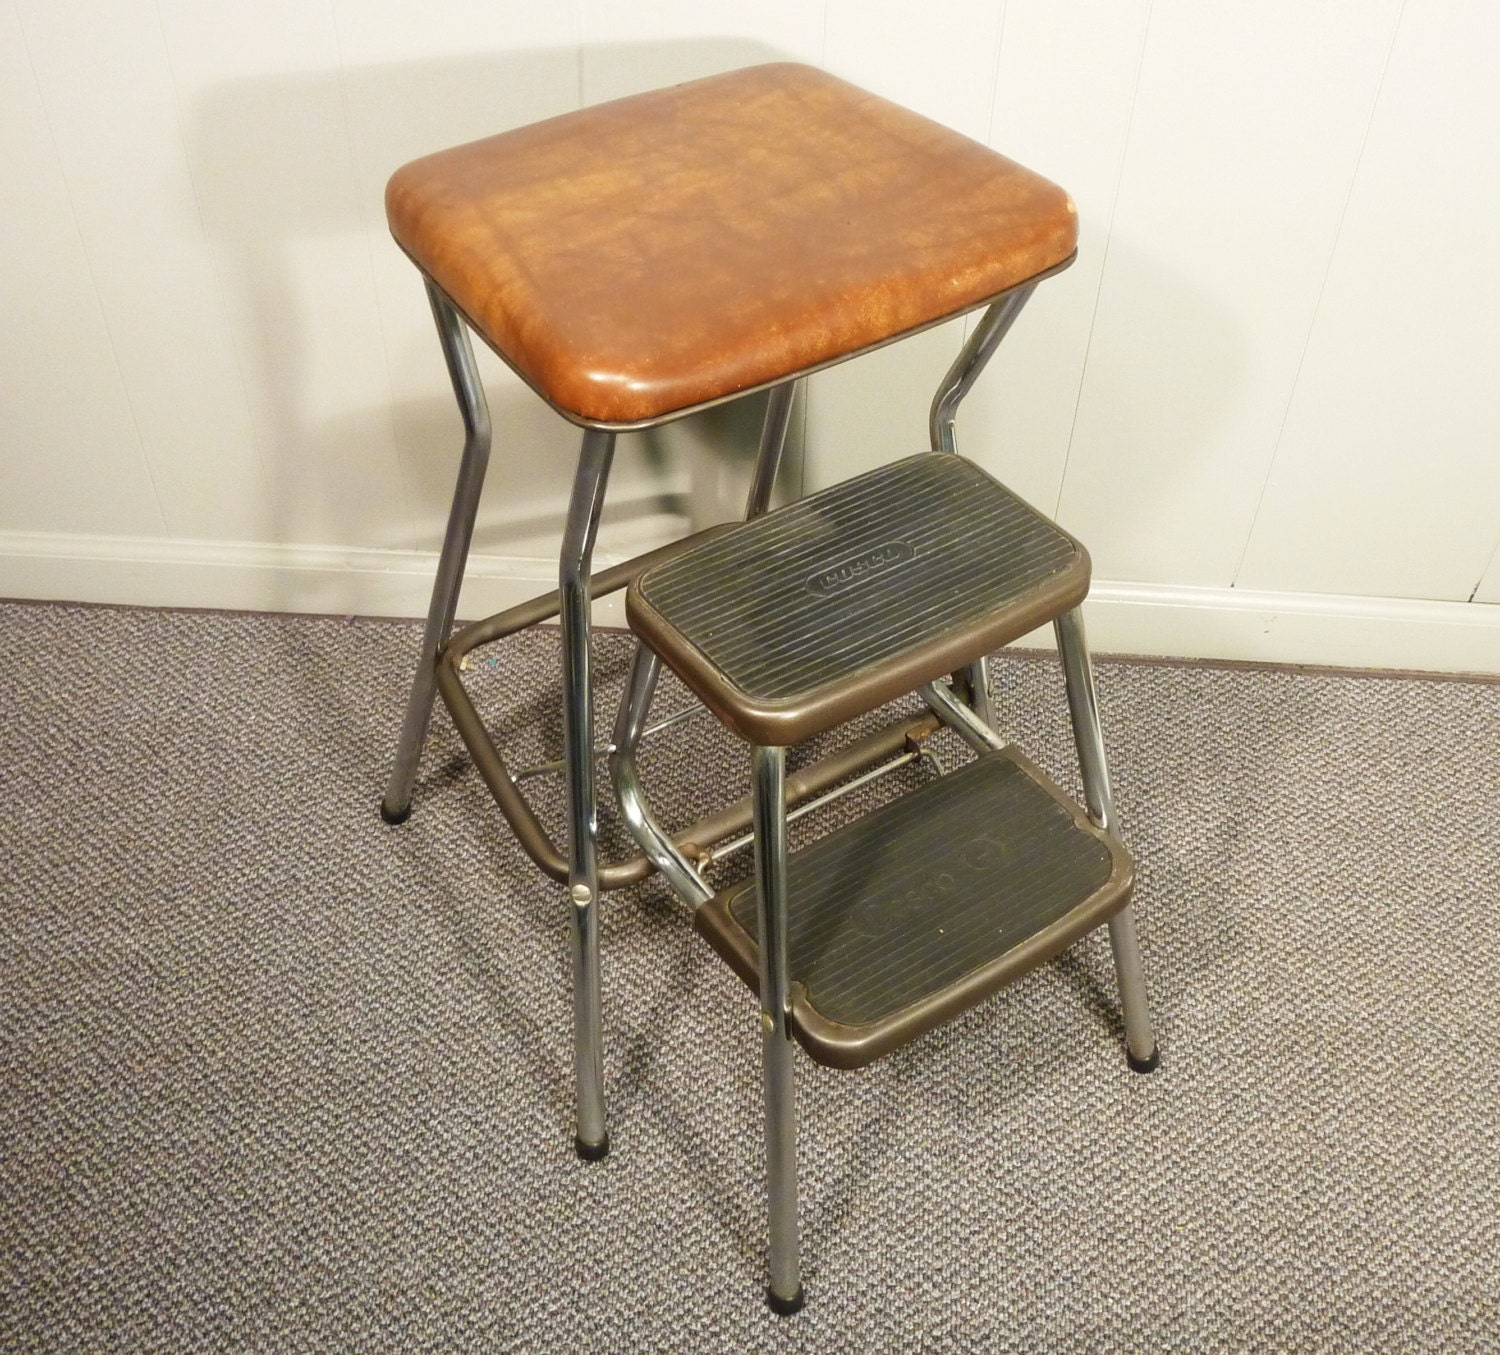 Retro 50s vintage step stool kitchen chair cosco for Stool chair